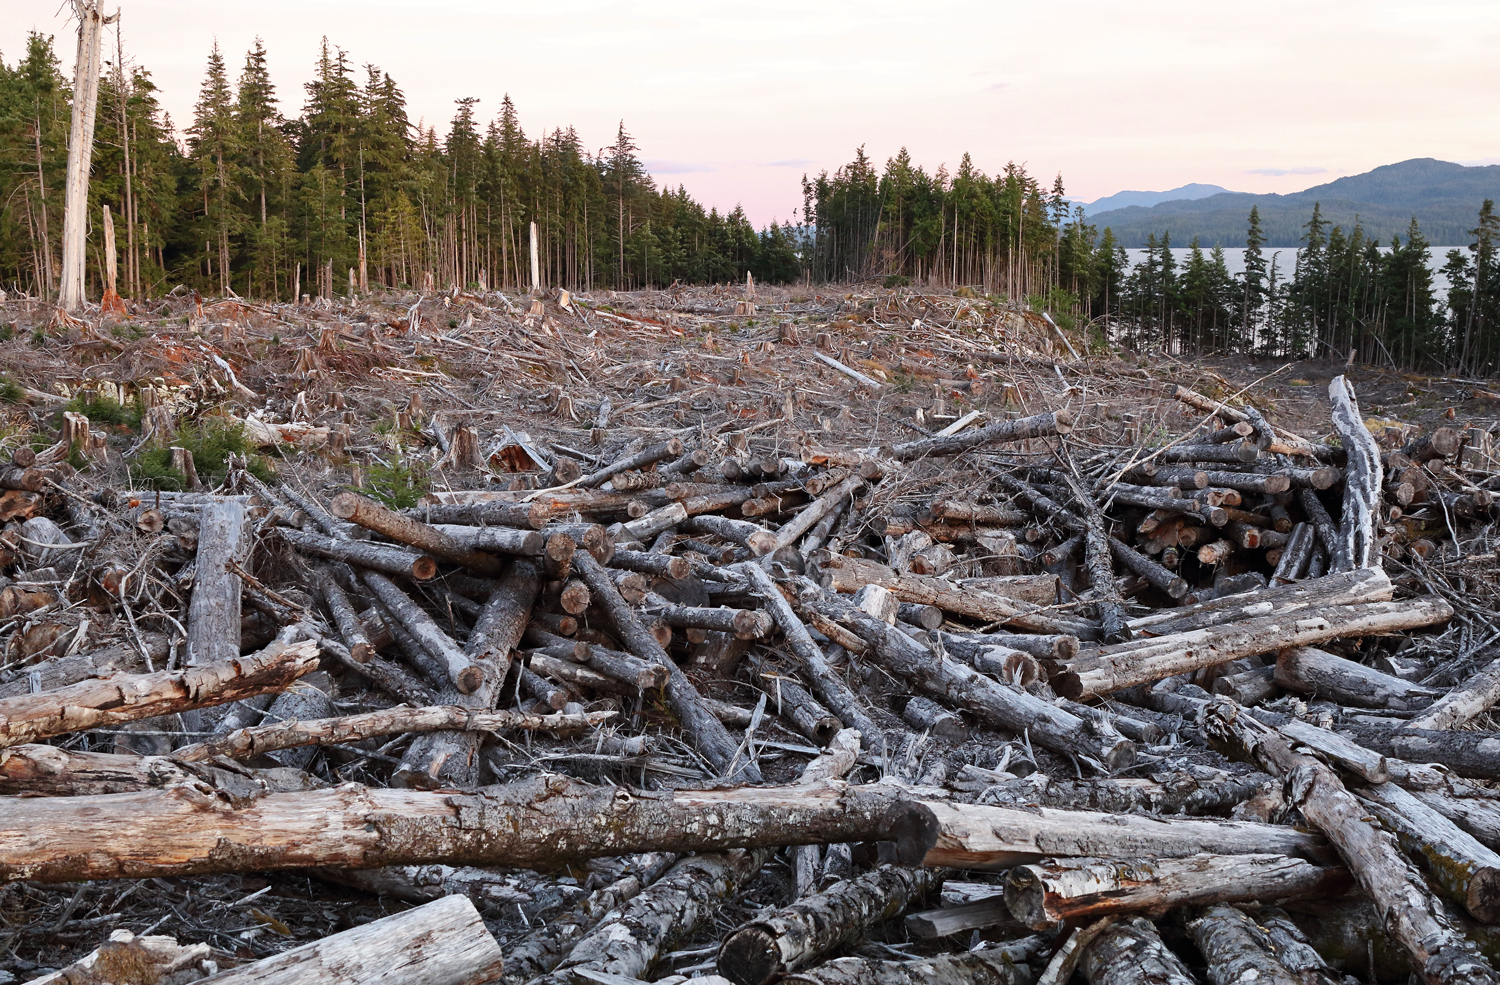 A recent clearcut in Southeast Alaska.